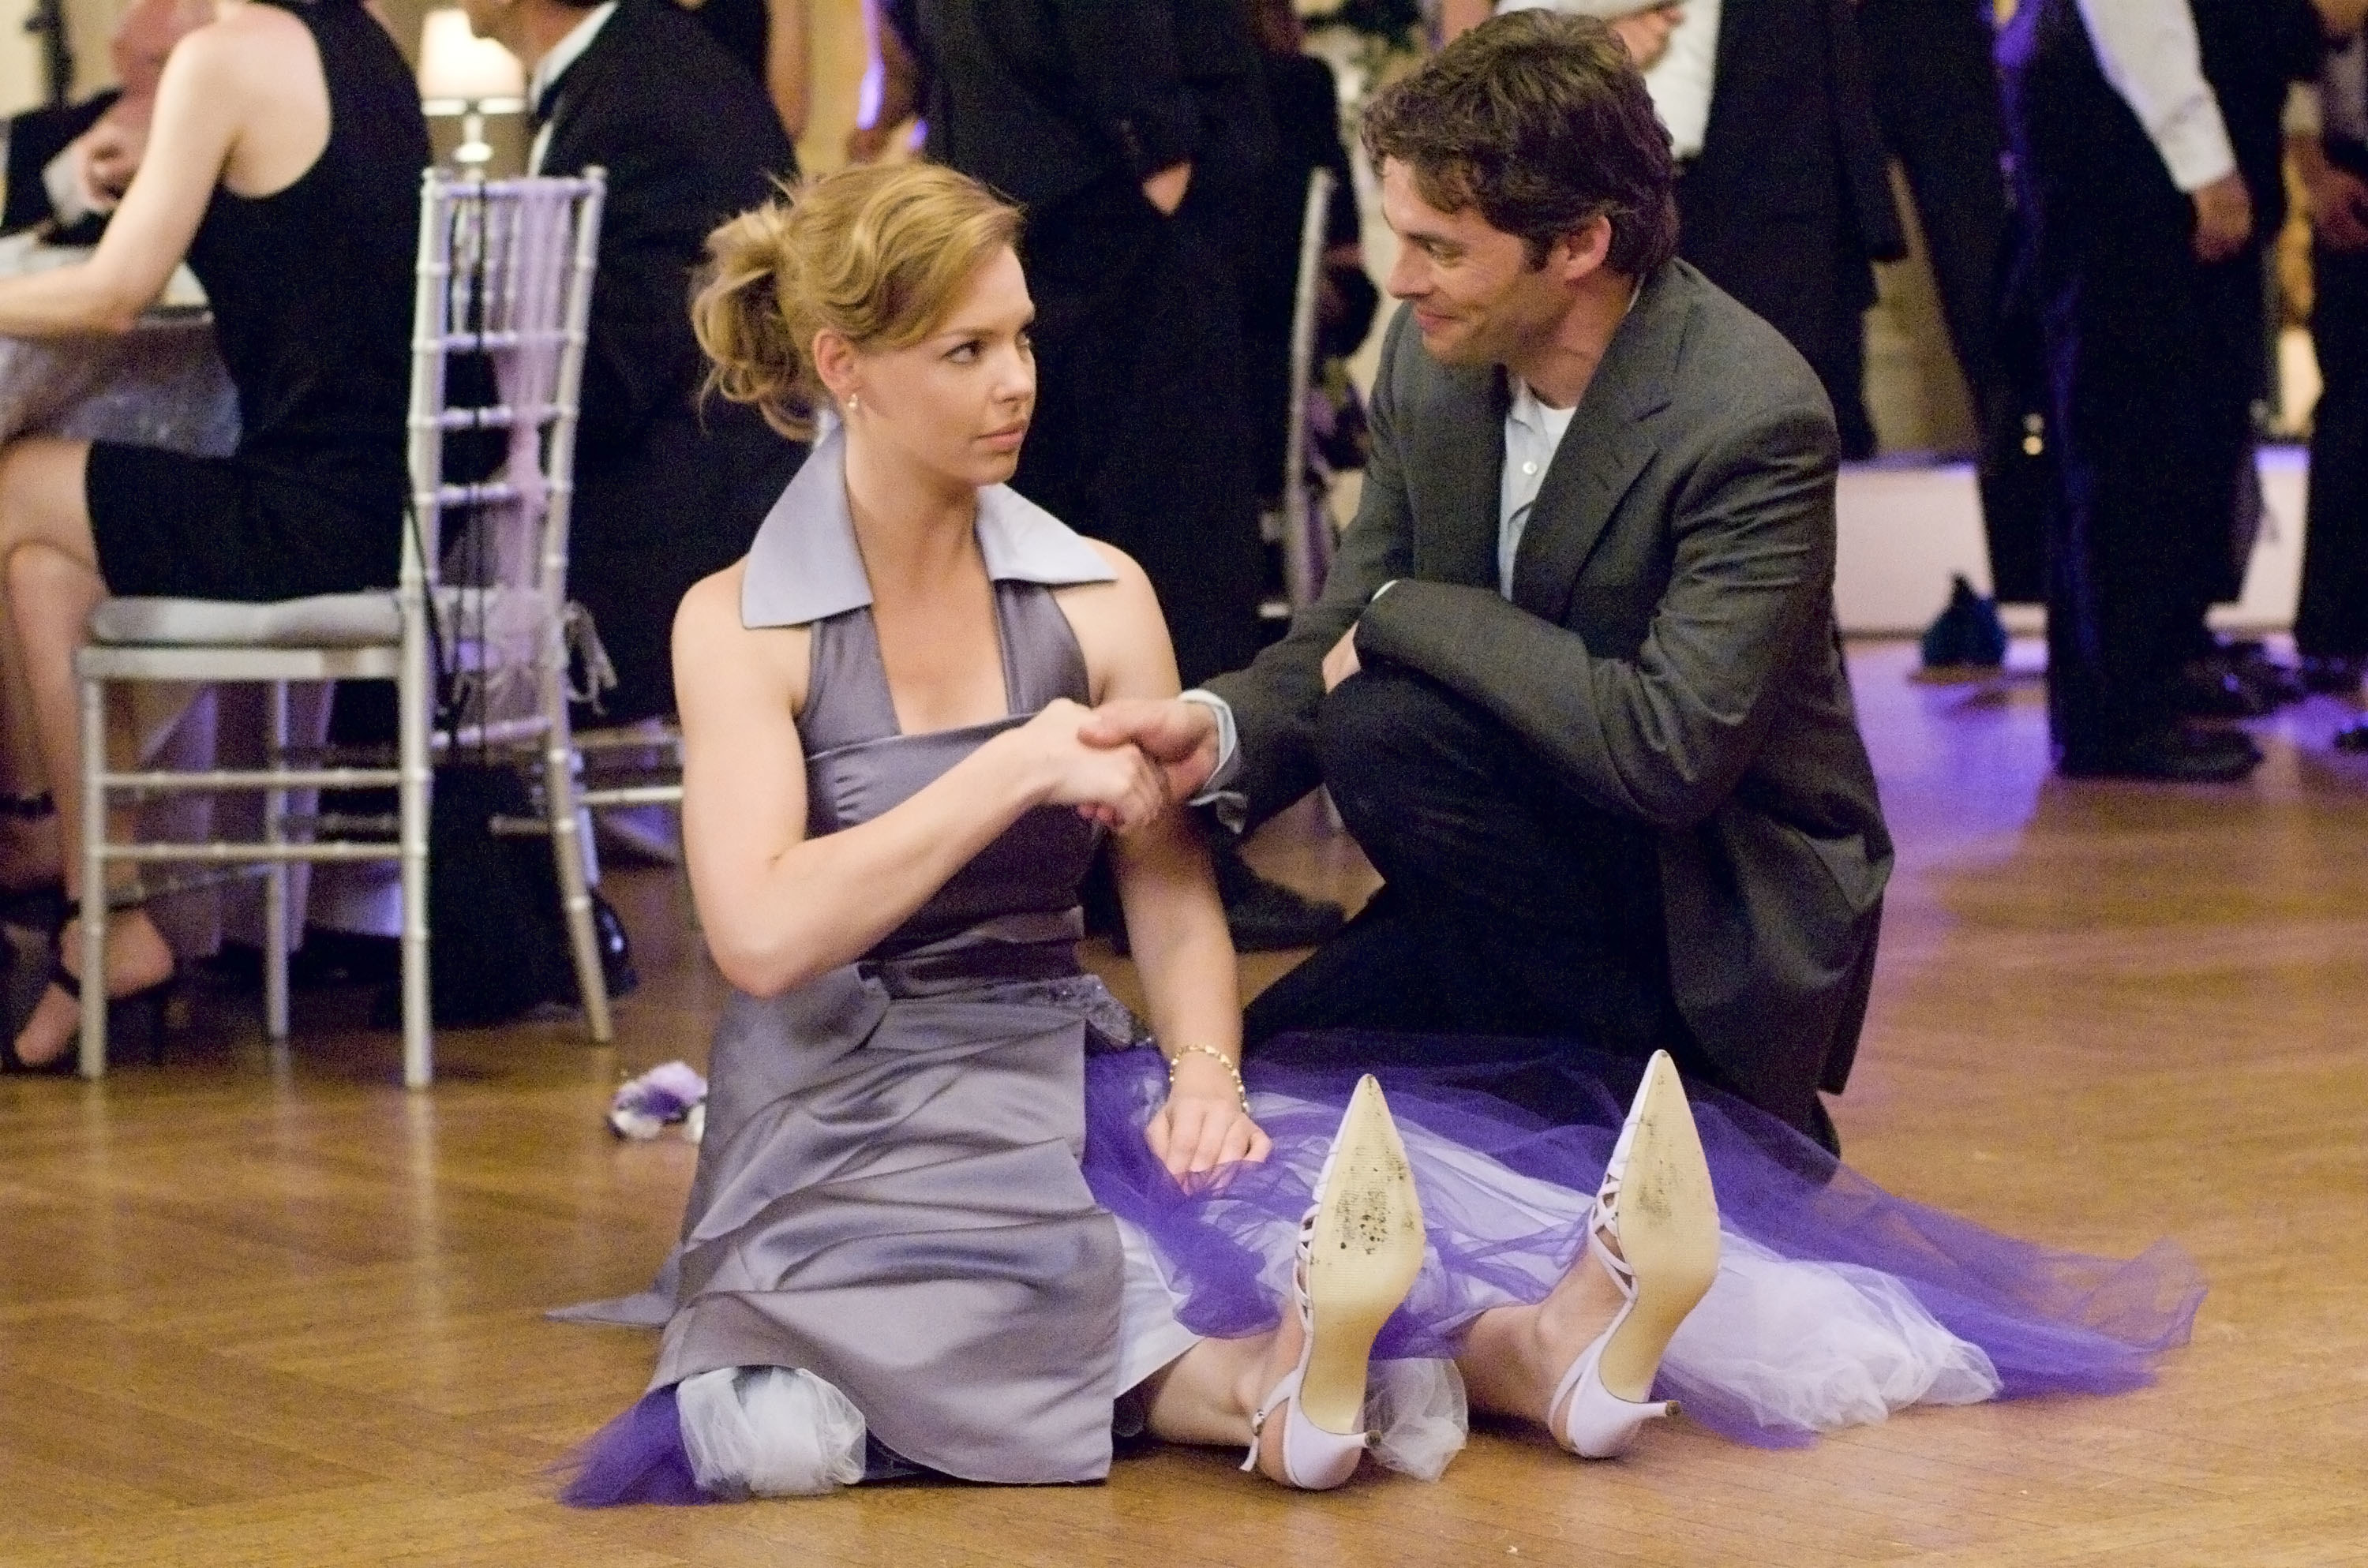 Kevin helping Jane up off of the floor